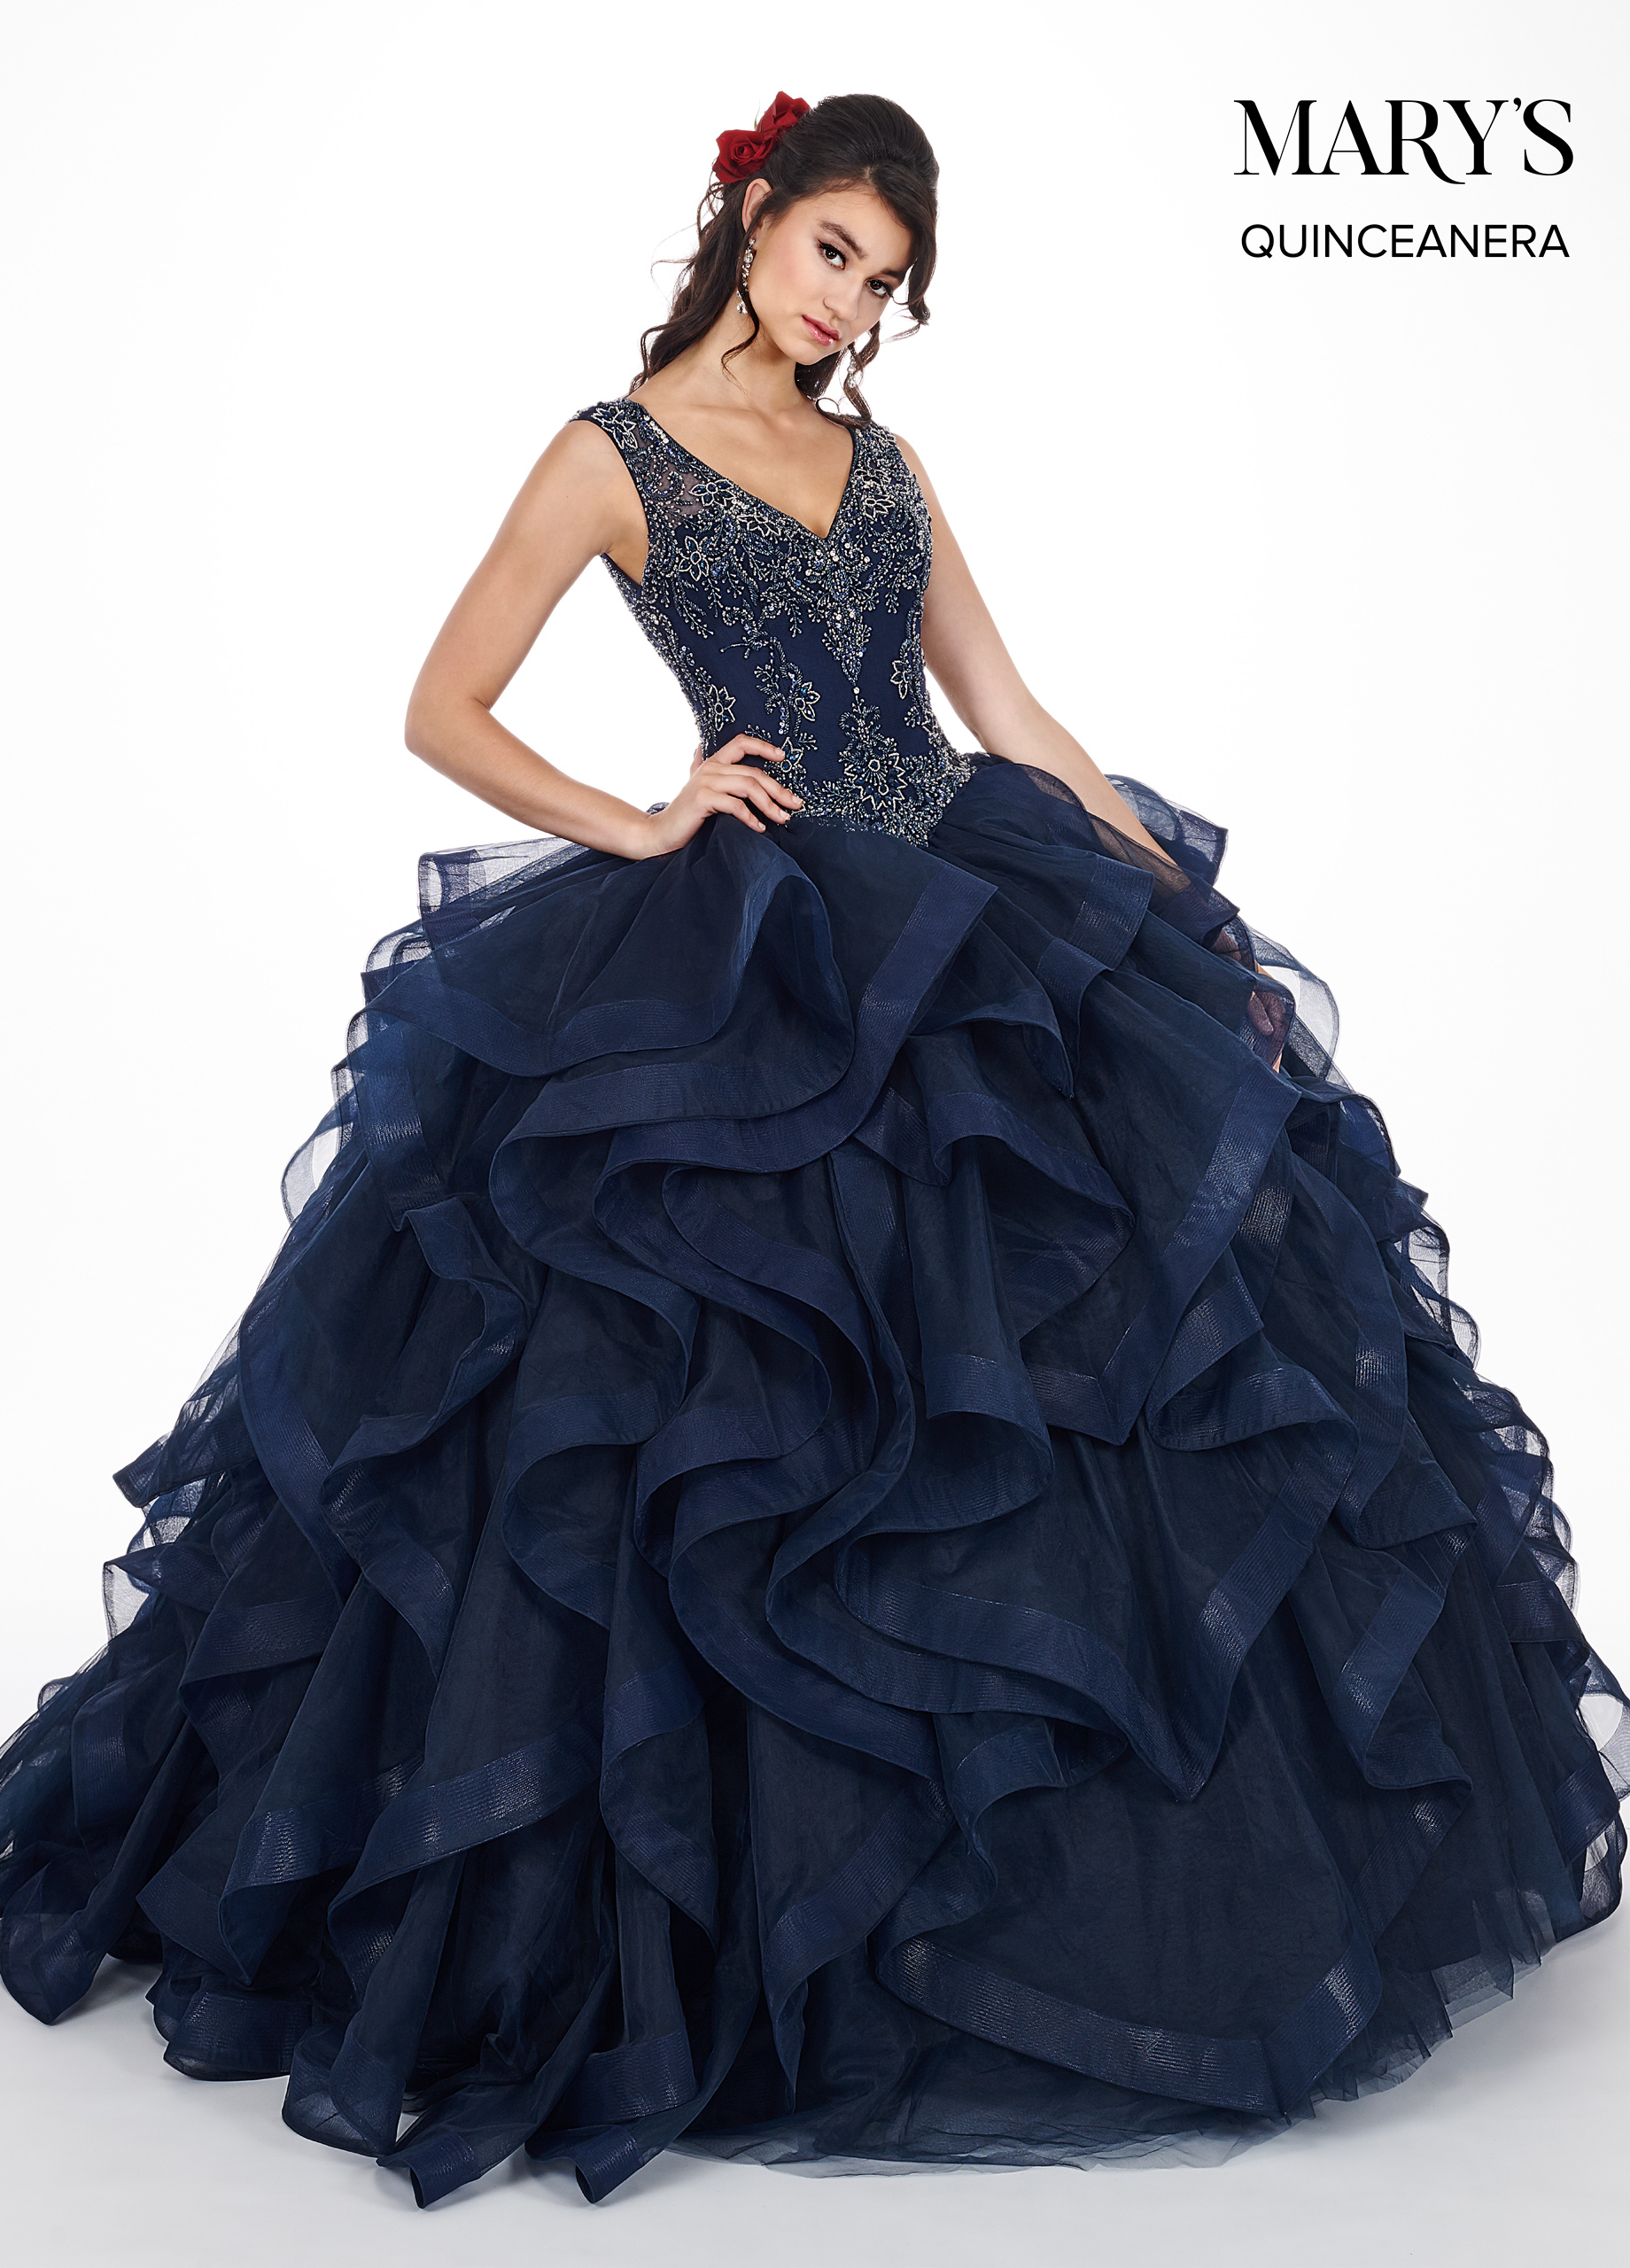 Marys Quinceanera Dresses | Mary's Quinceanera | Style - MQ2045